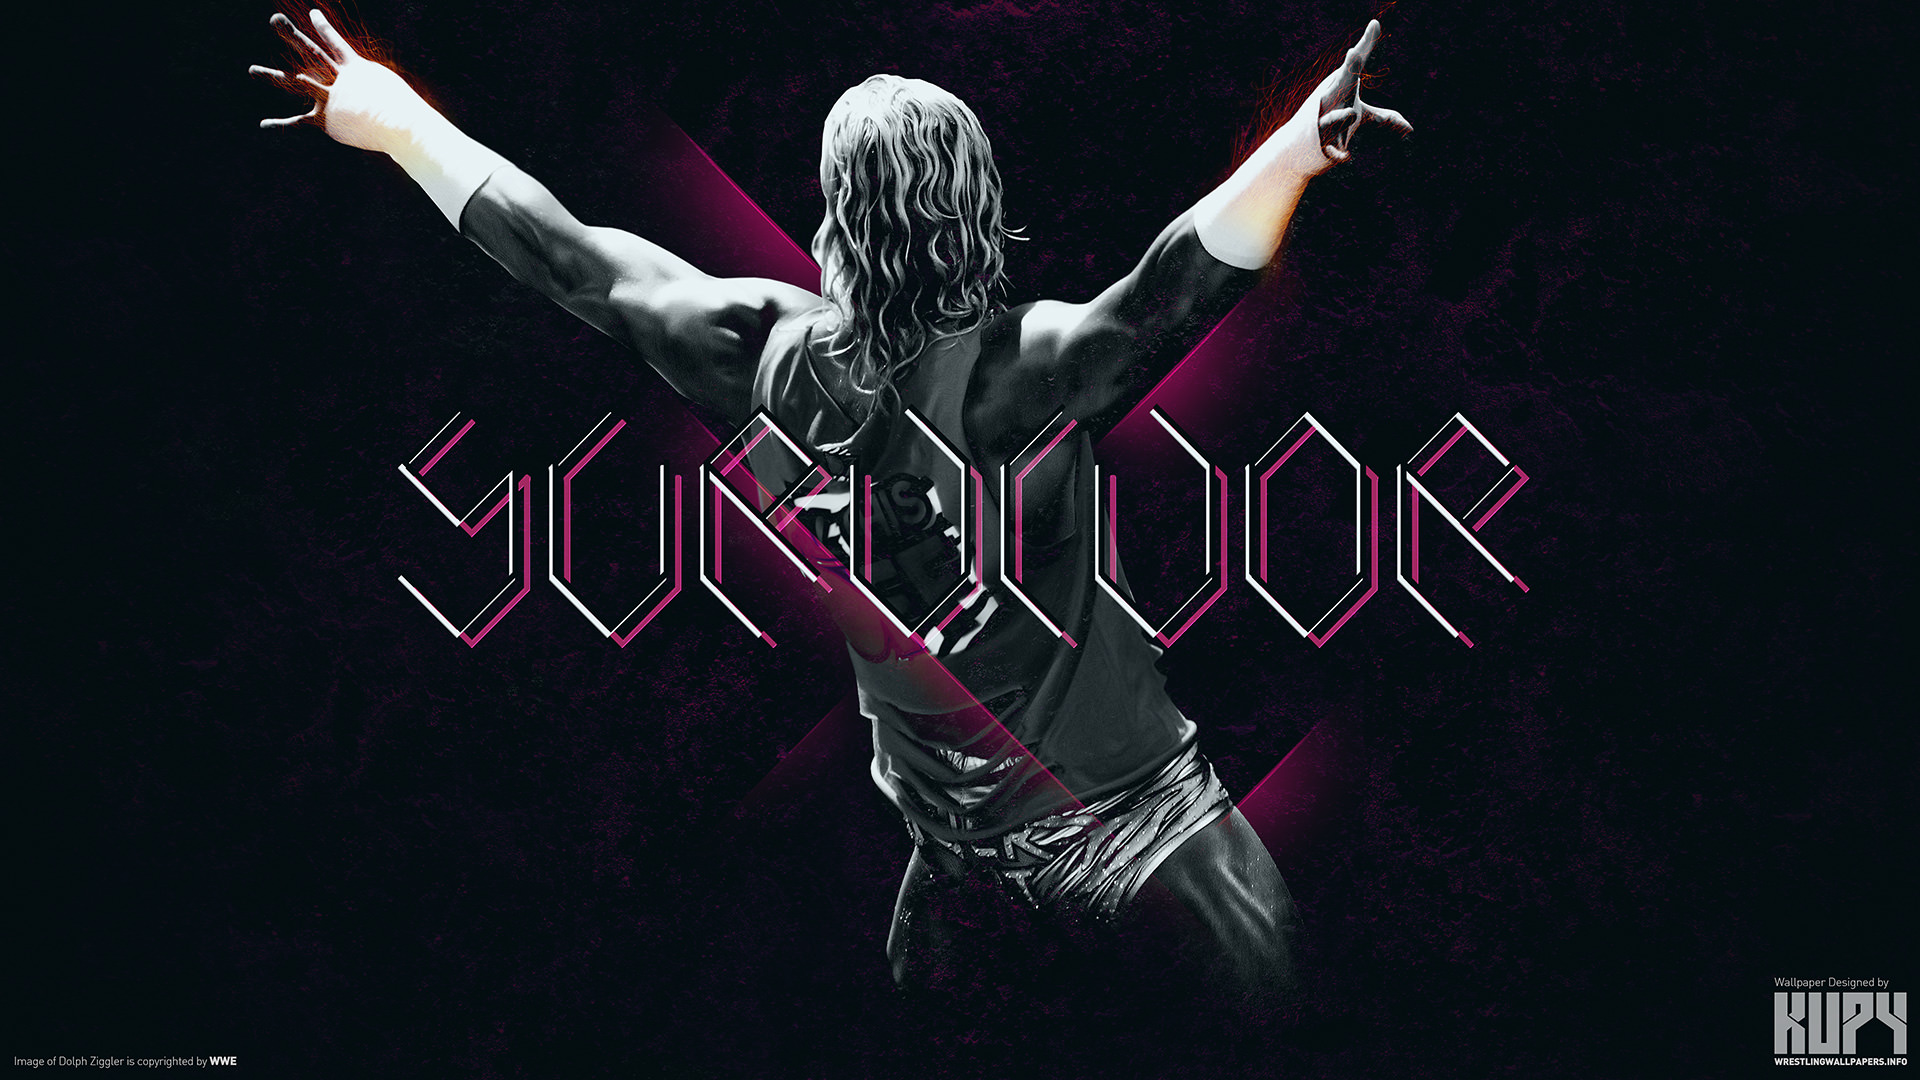 1920x1080 KupyWrestlingWallpapers.INFO – The newest wrestling wallpapers on ...